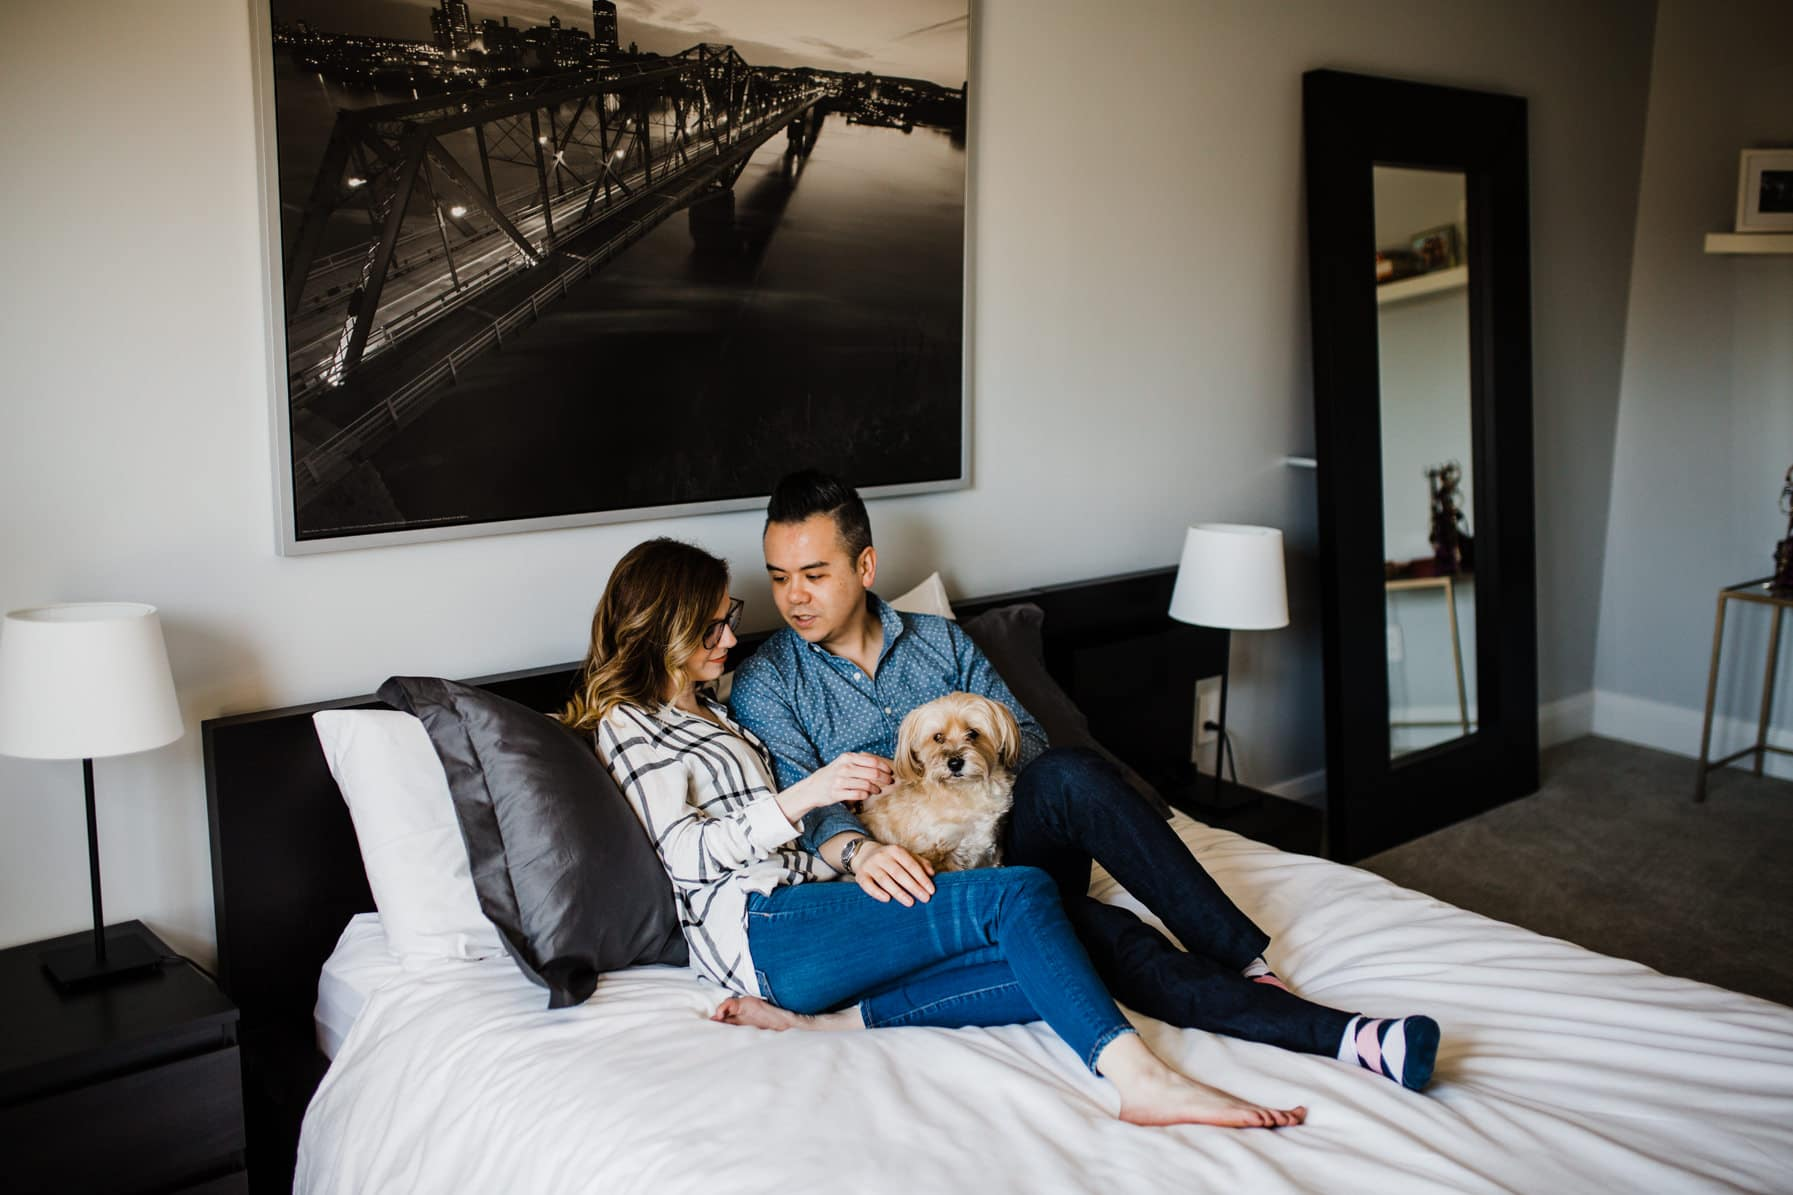 Couple hang out in bed - Cozy At-Home Photos Lifestyle